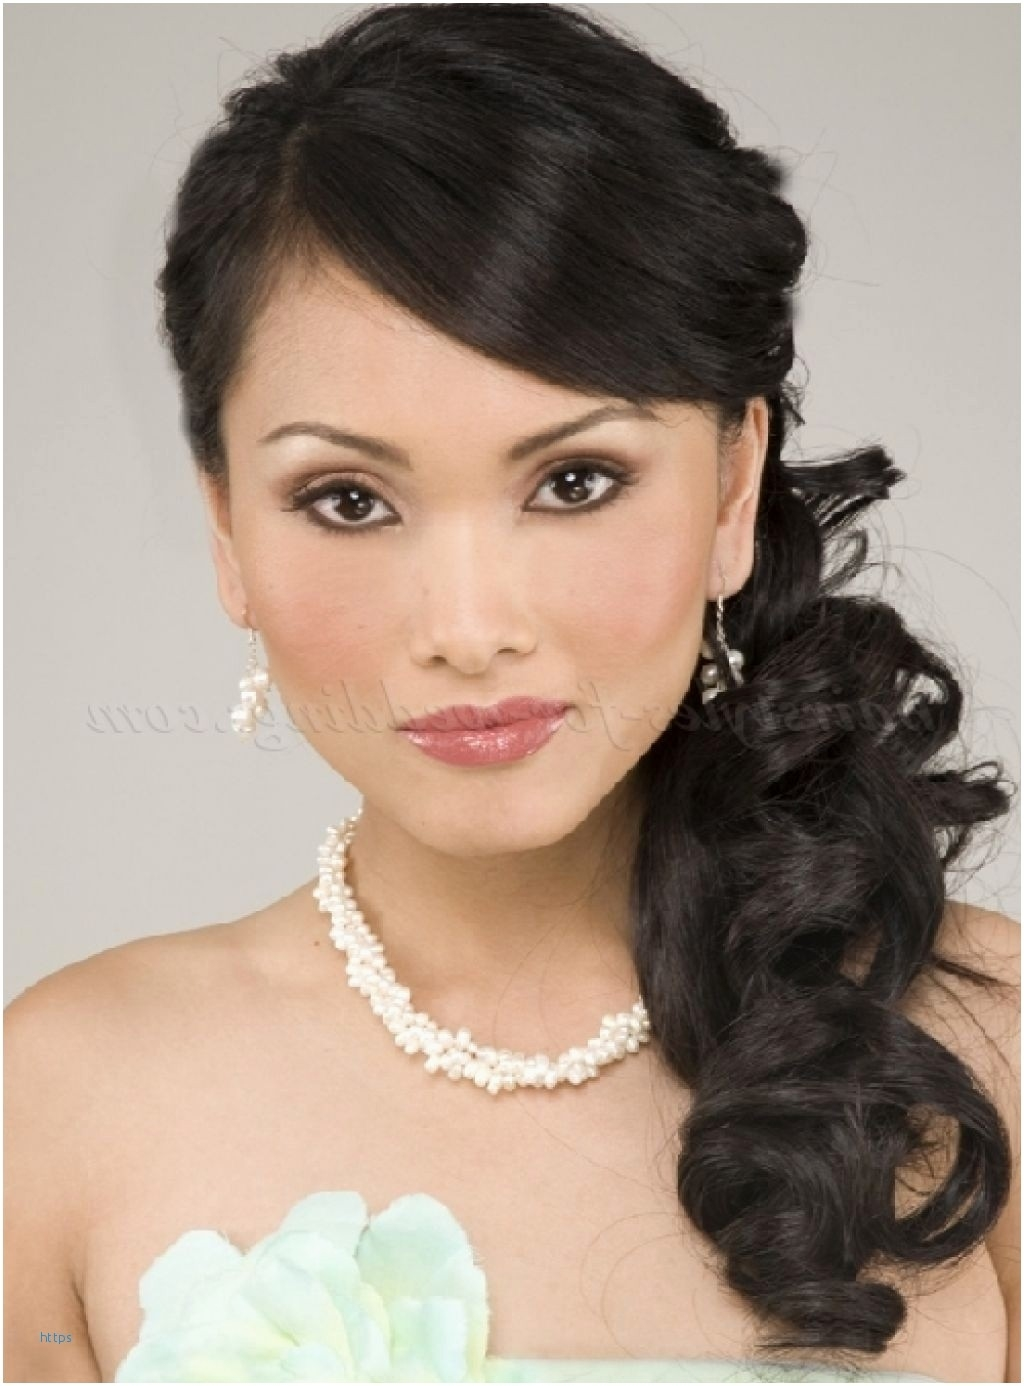 64 Best Of Side Prom Hairstyles Figure | Short Hairstyles Idea for Asian Hairstyles For Prom